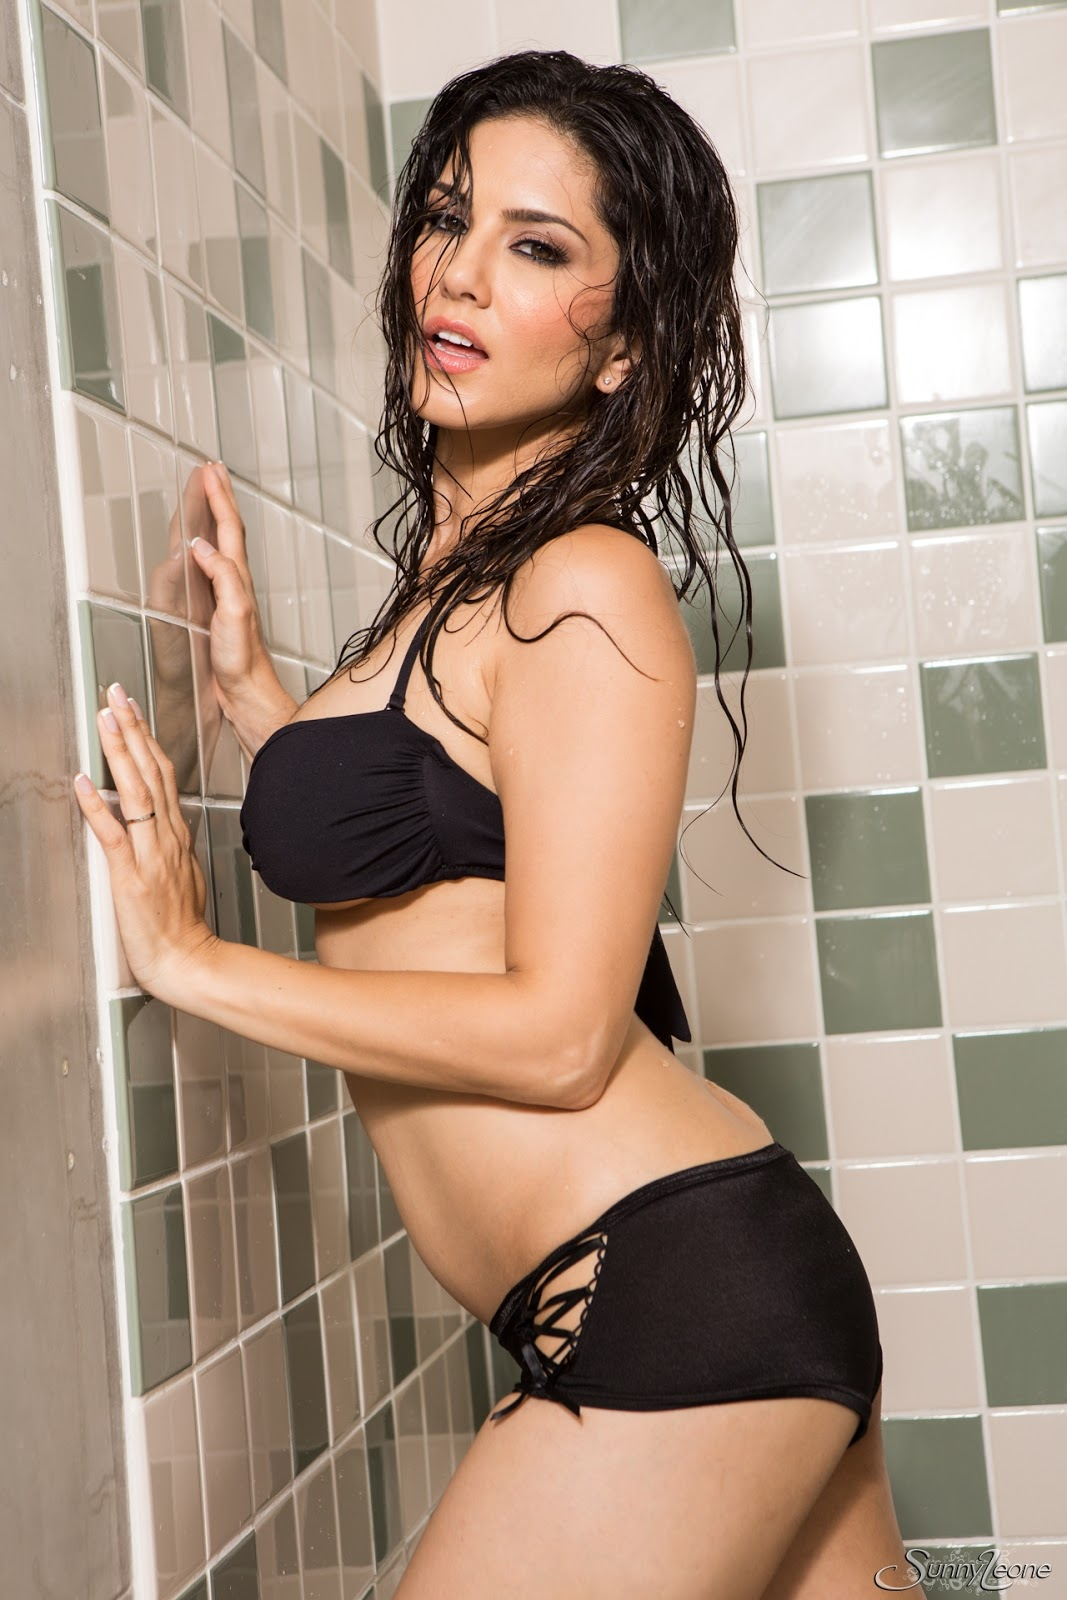 Sunny Leone is taking a hot shower while in her Black wet ...